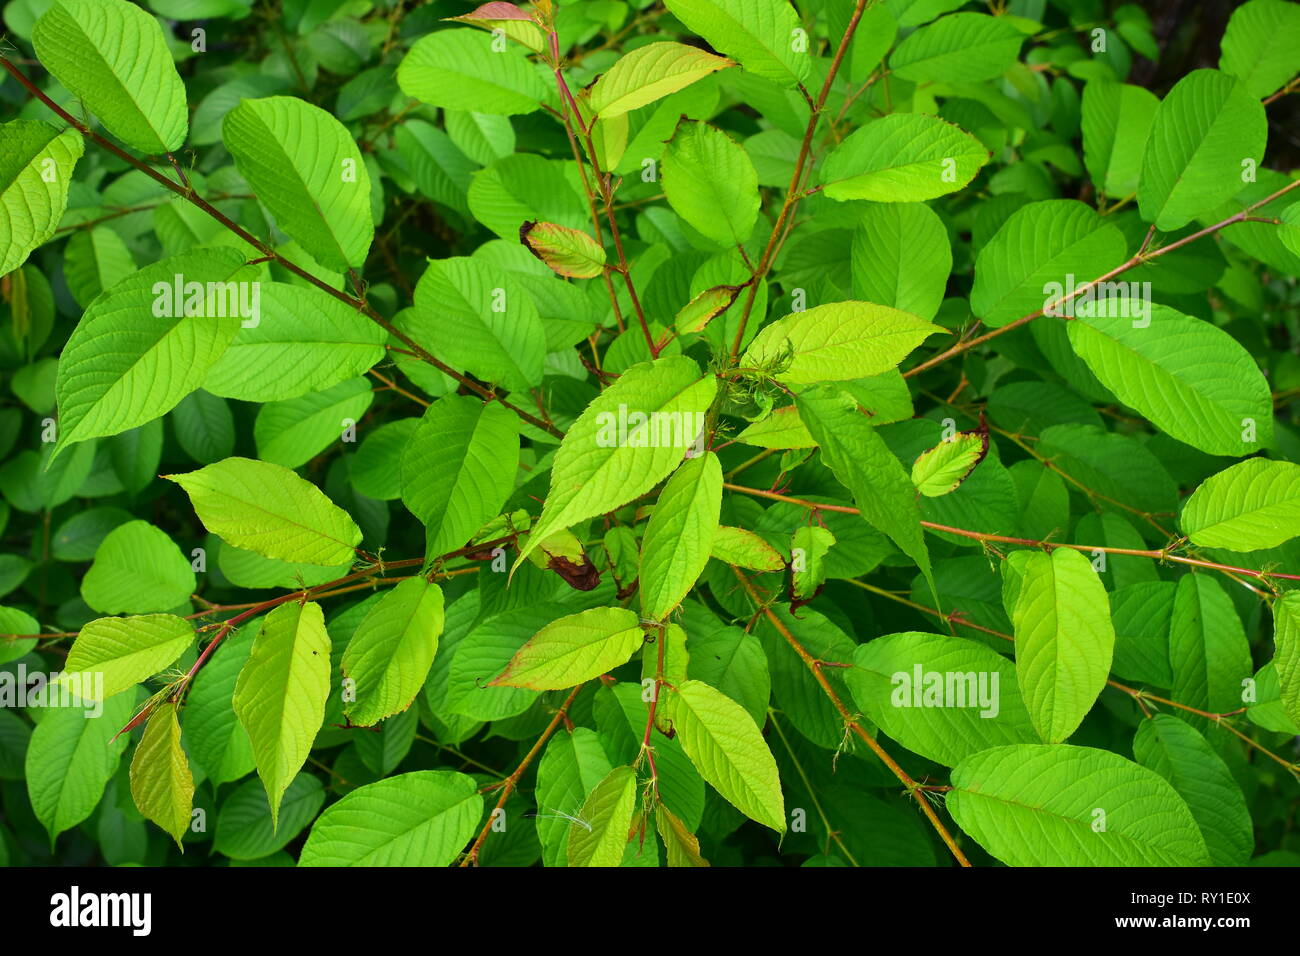 Bright saturated green bush leaves  with simple pinnate venation. - Stock Image